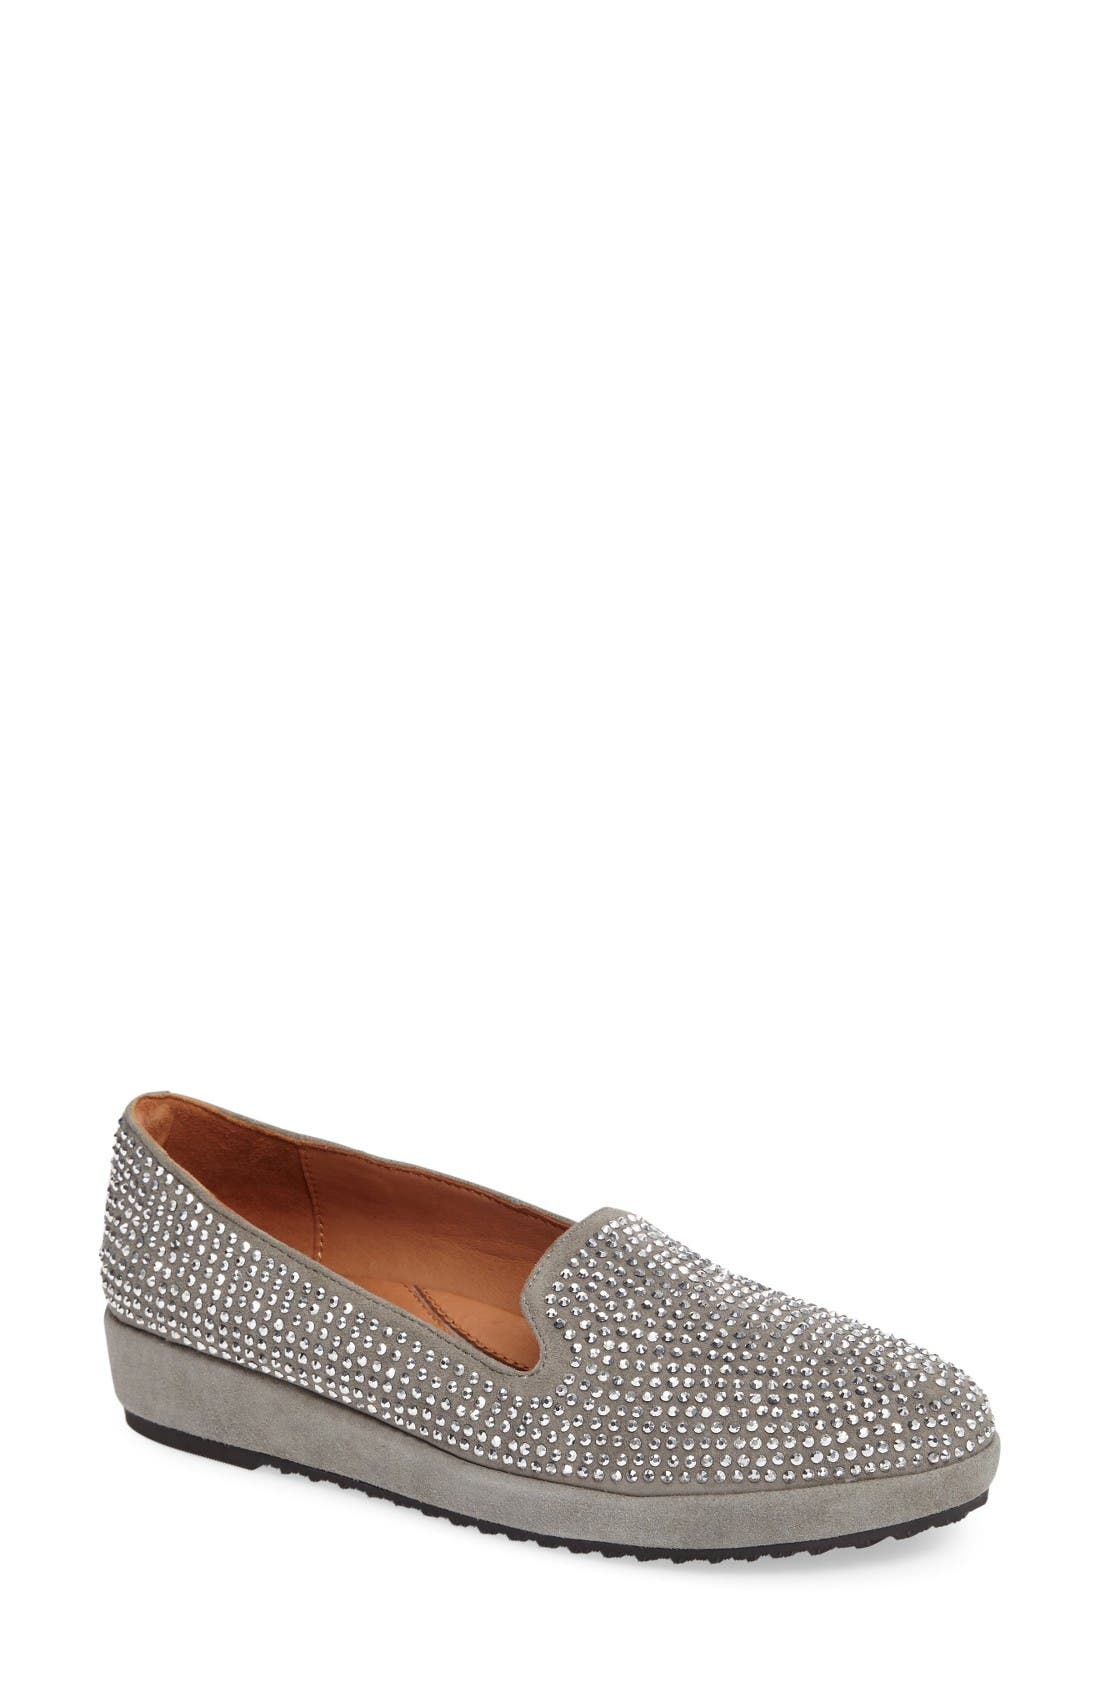 L'Amour des Pieds Correze Wedge Slip-On (Women)